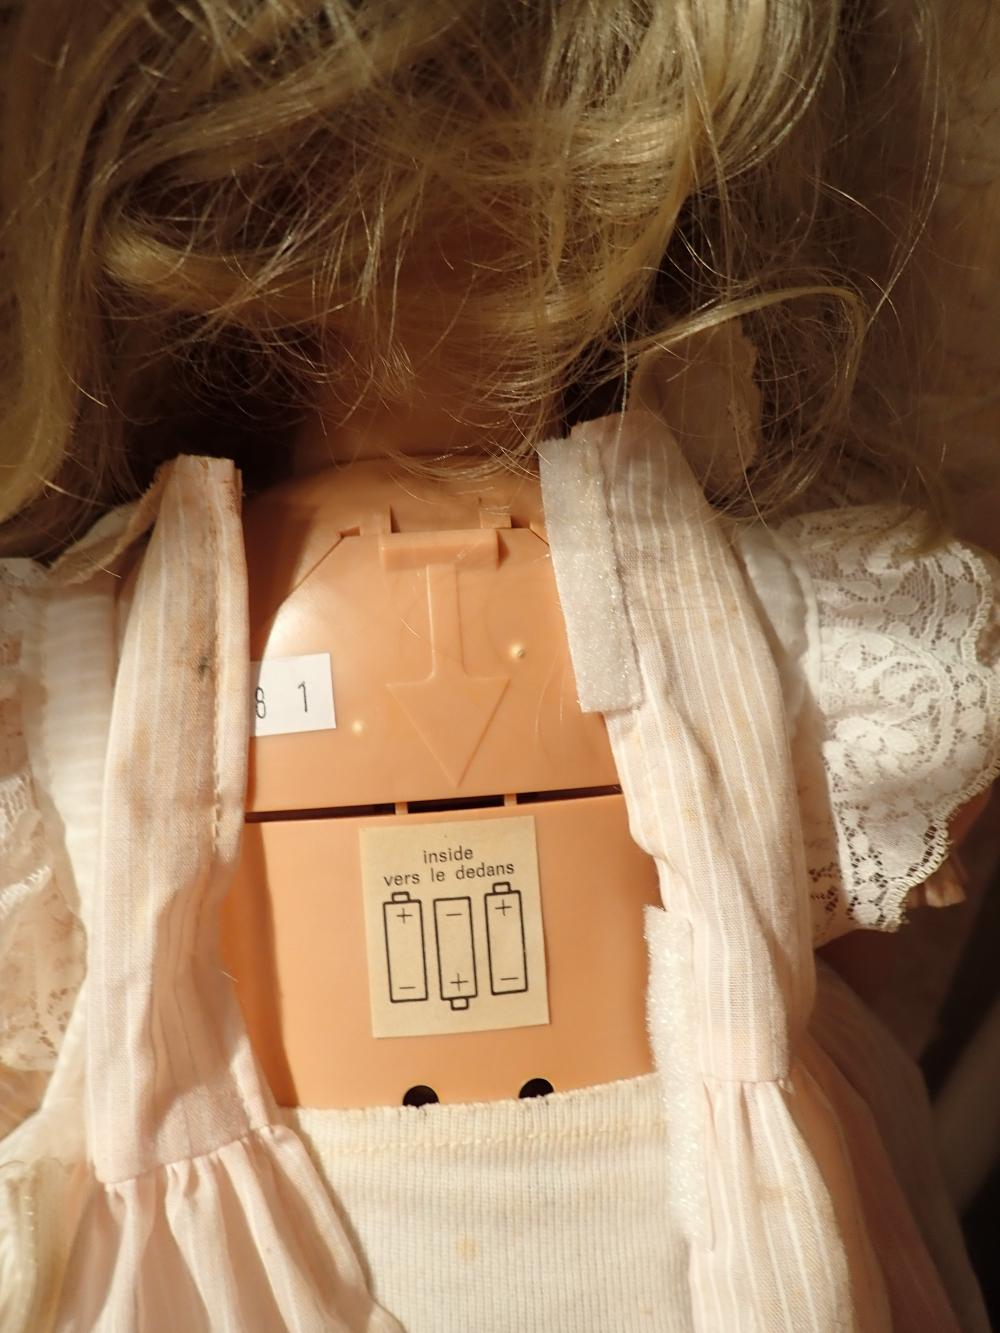 """24"""" SOFT HEAD HARD PLASTIC DOLL BATTERY OPERATED DOLL GOTZ - PUPPET ON HEAD - (MINIFOR MADE IN ITALY), BLOND HAIR BLUE EYES, SOFT PLASTIC HEAD AND HANDS, BODY HARD PLASTIC. DOLL HAS 2 BATTERY COMPARTMENTS AT FRONT AND BACK,"""